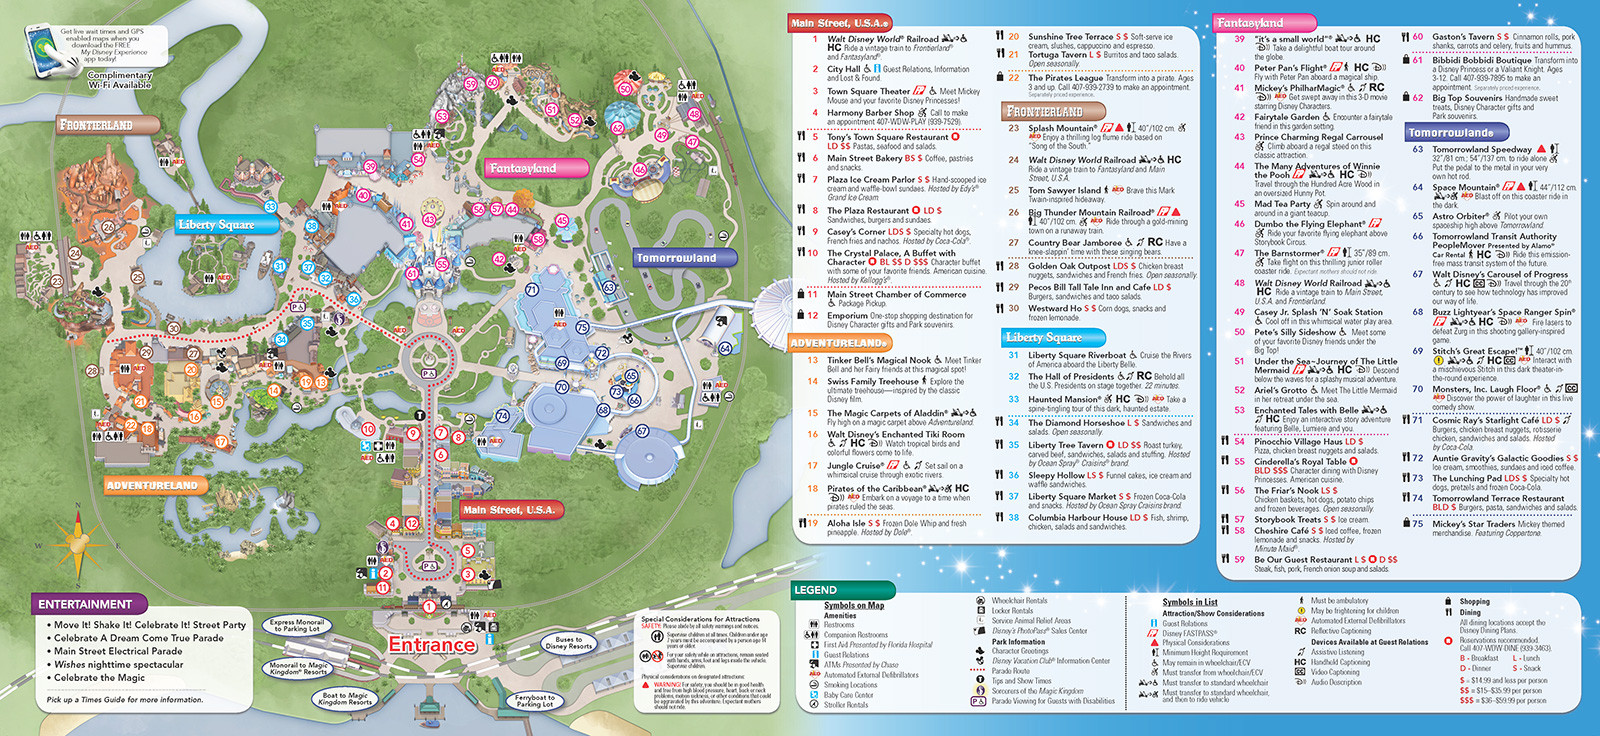 Printable Map Disney Springs New New 2013 Park Maps and Times Guides 4 Of 20